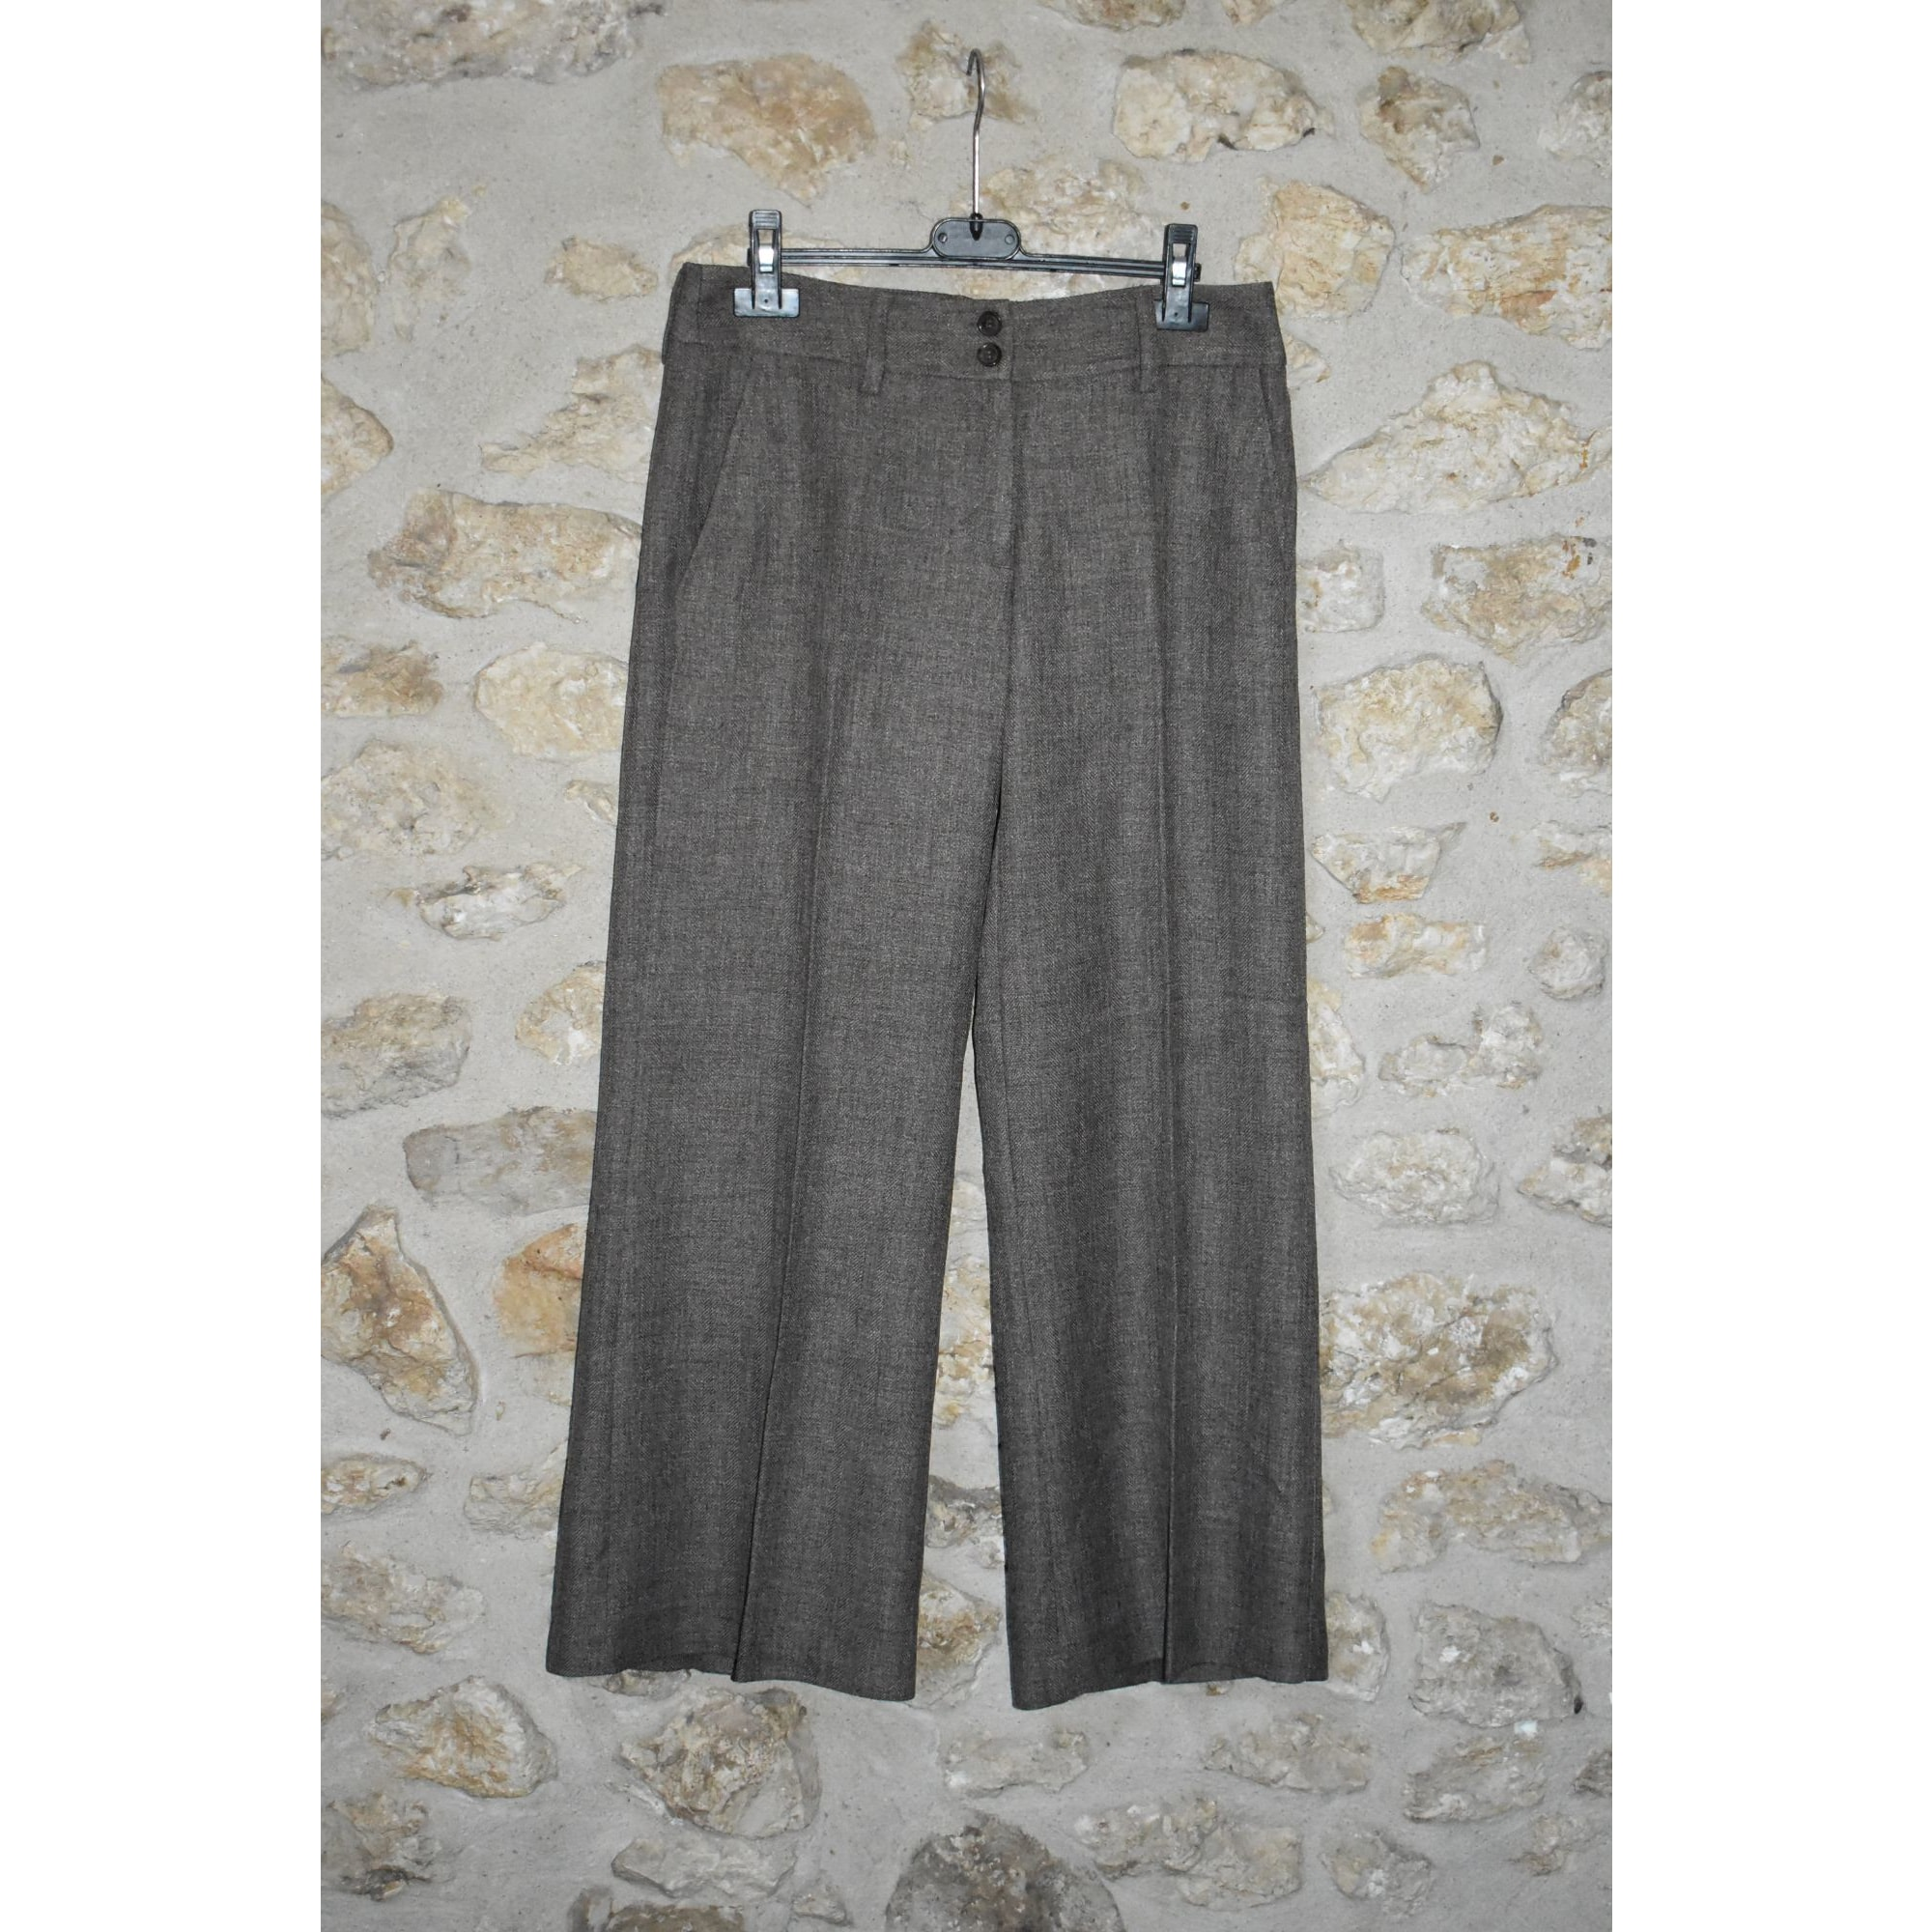 Pantalon large H&M Marron